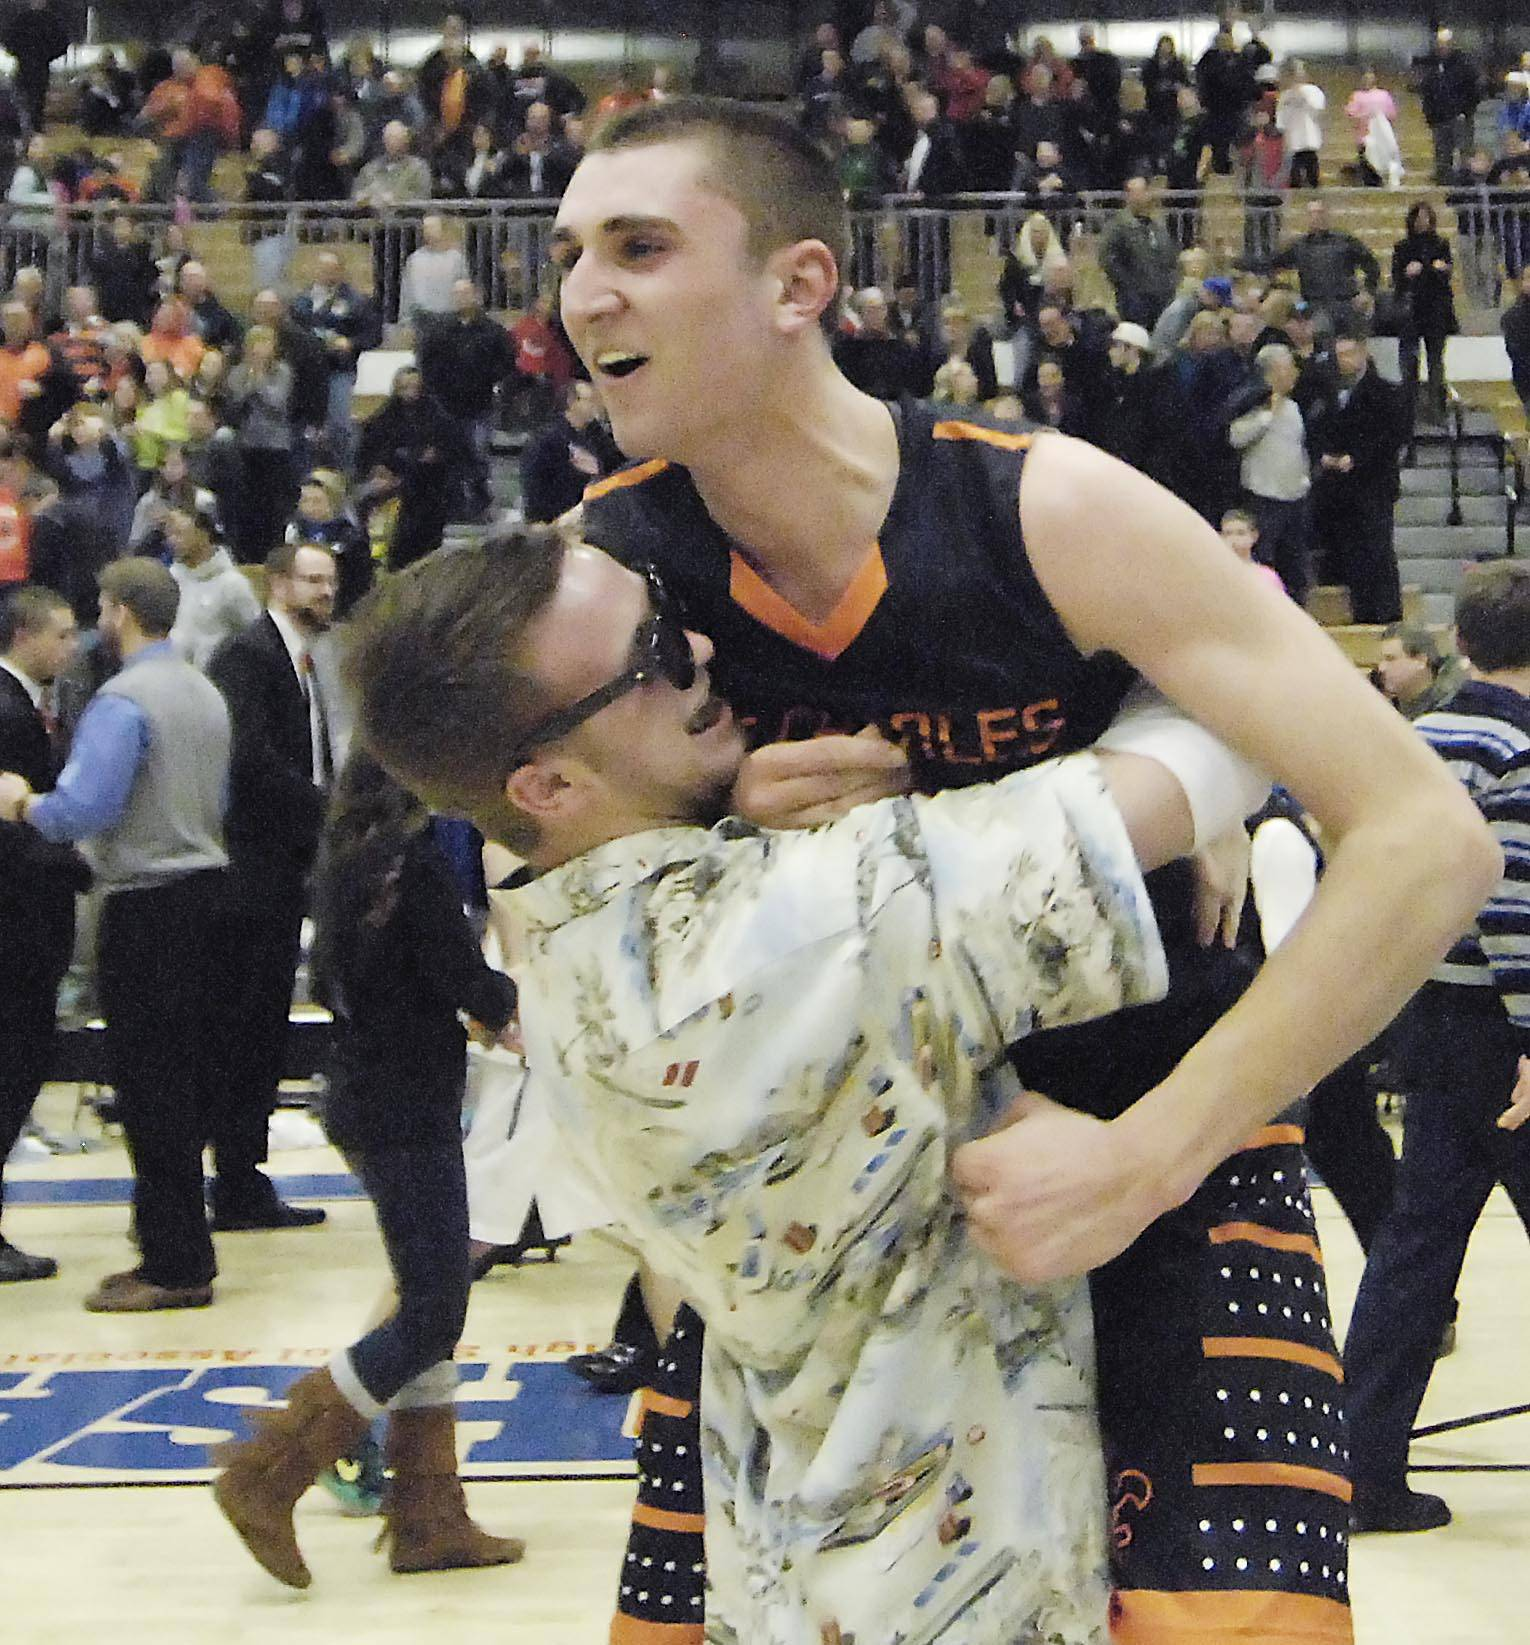 St. Charles East's Dom Adduci is lifted by a classmate Wednesday after the Saints beat St. Charles North in the regional game at St. Charles North.